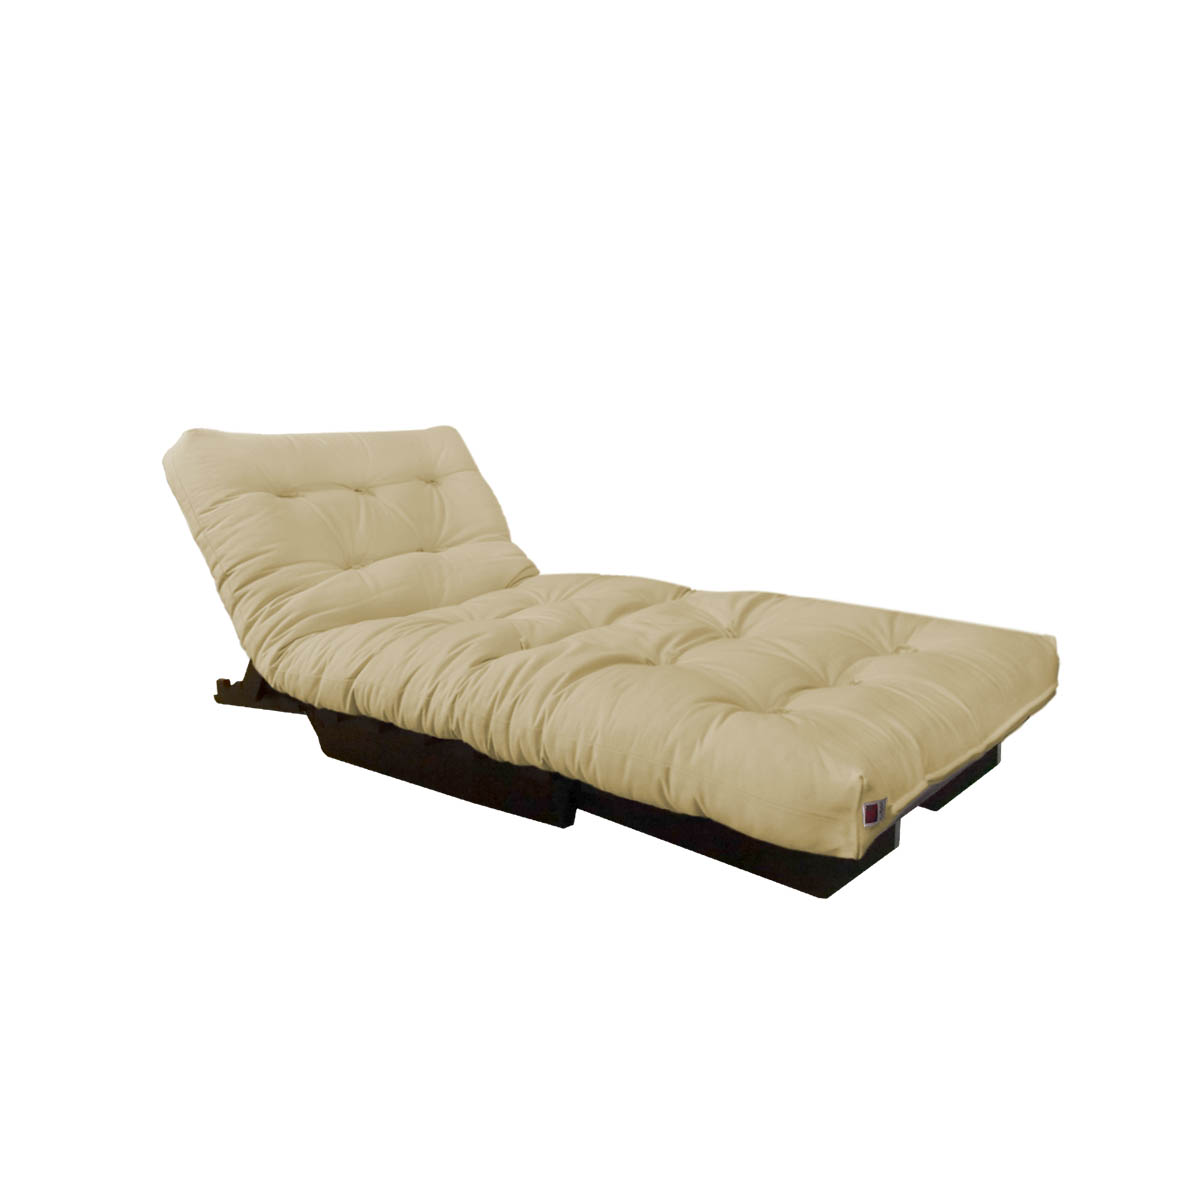 pin futon sofa cama plegable venta online haiku on pinterest